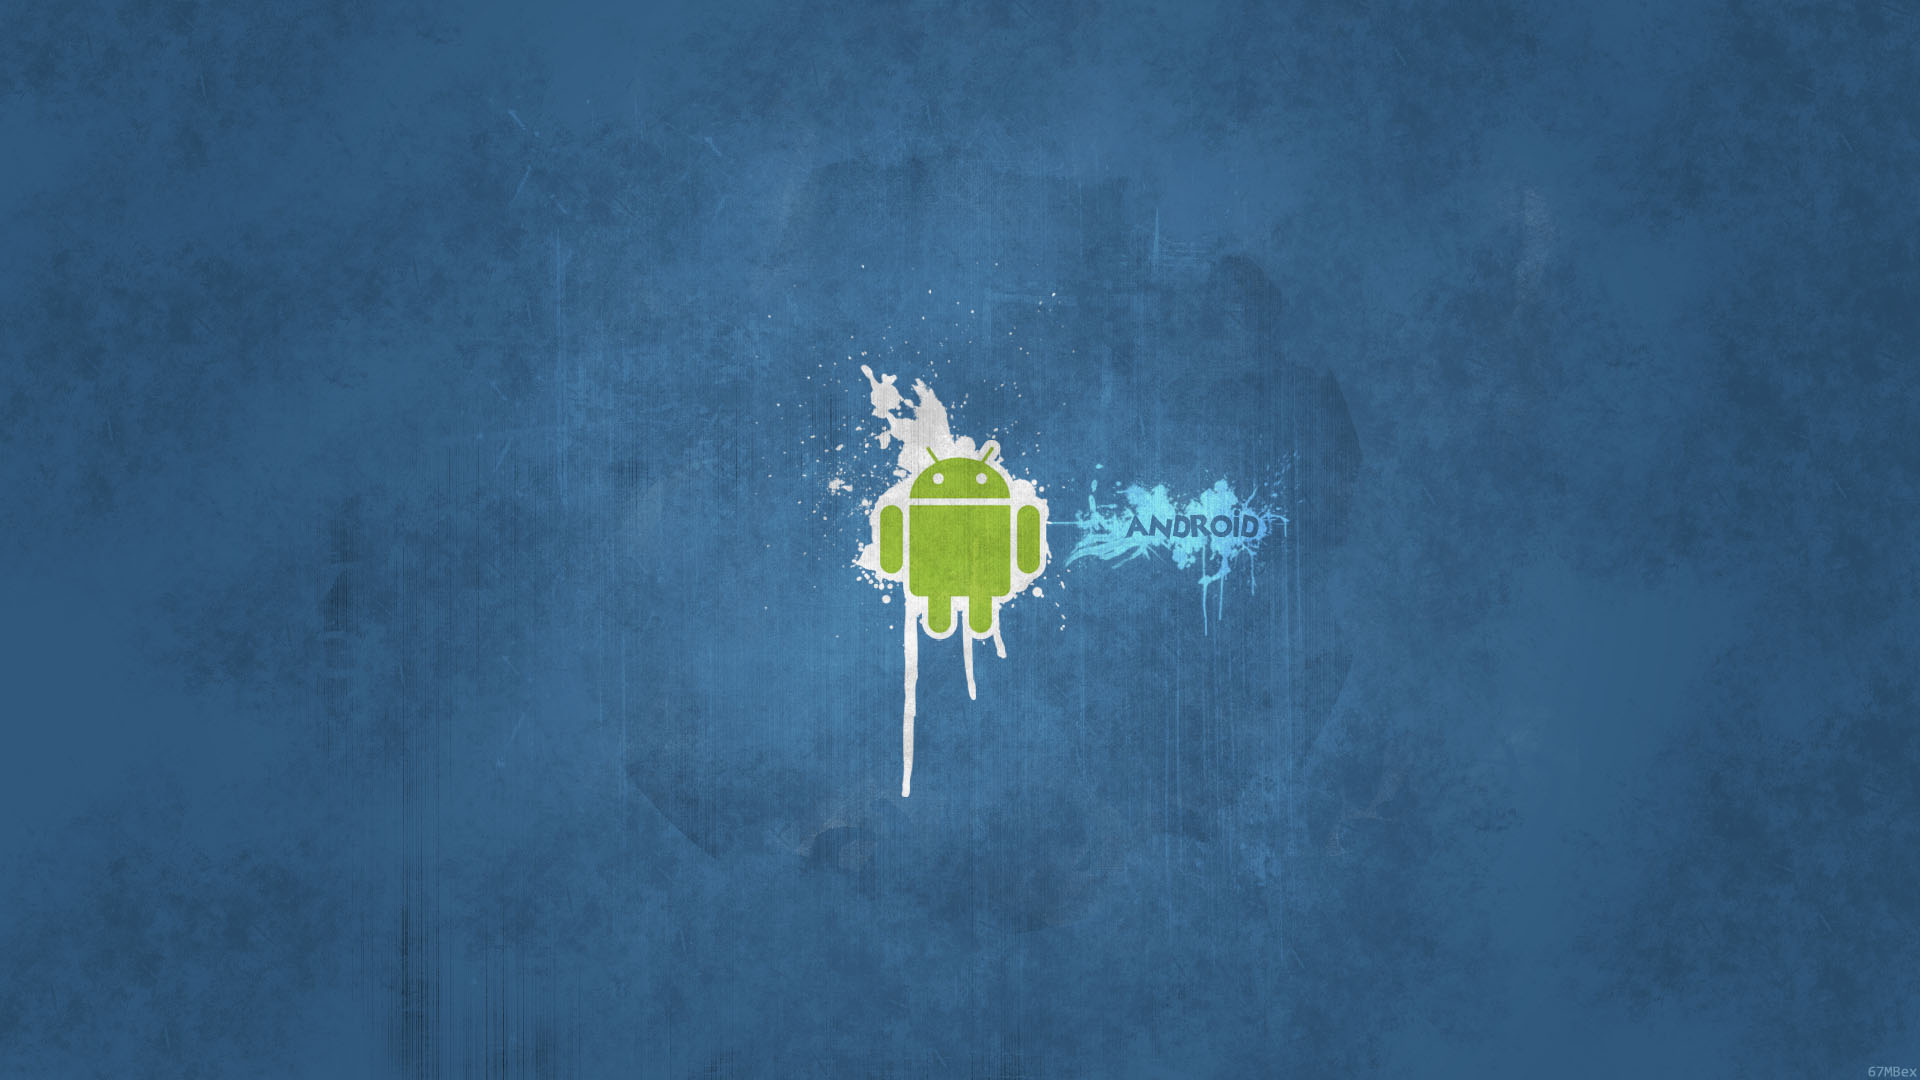 Android wallpaper by 67mbex on deviantart android android voltagebd Choice Image